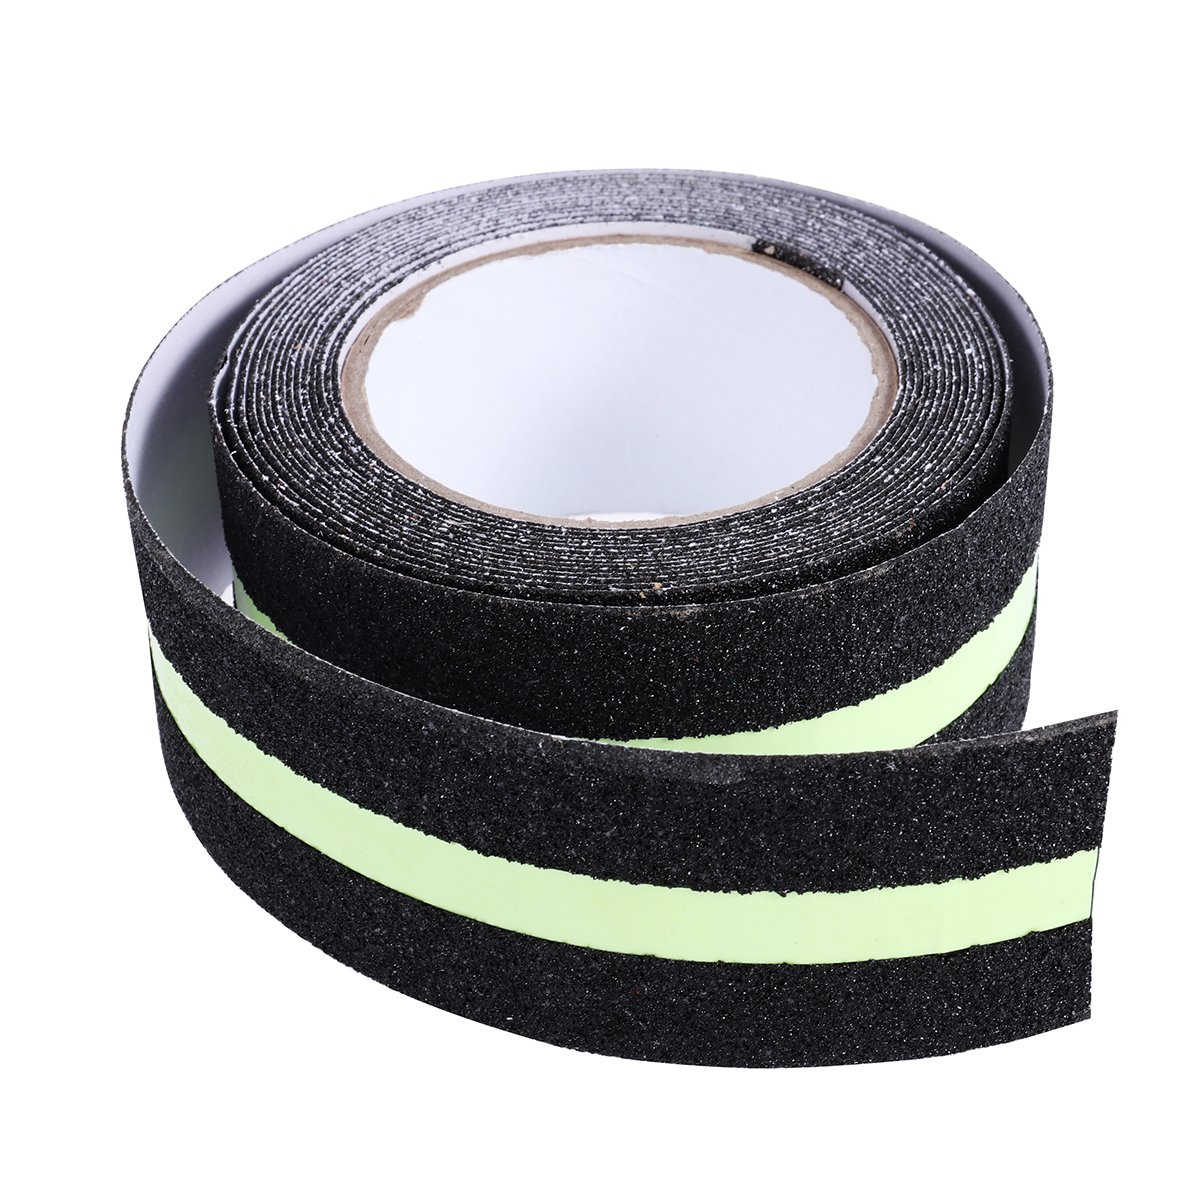 ueetek Non Slip Safety Tape Fluorescent Green with Reflective Strips for Indoor and Outdoor Use, 5 cm x 5 m 5cm x 5m